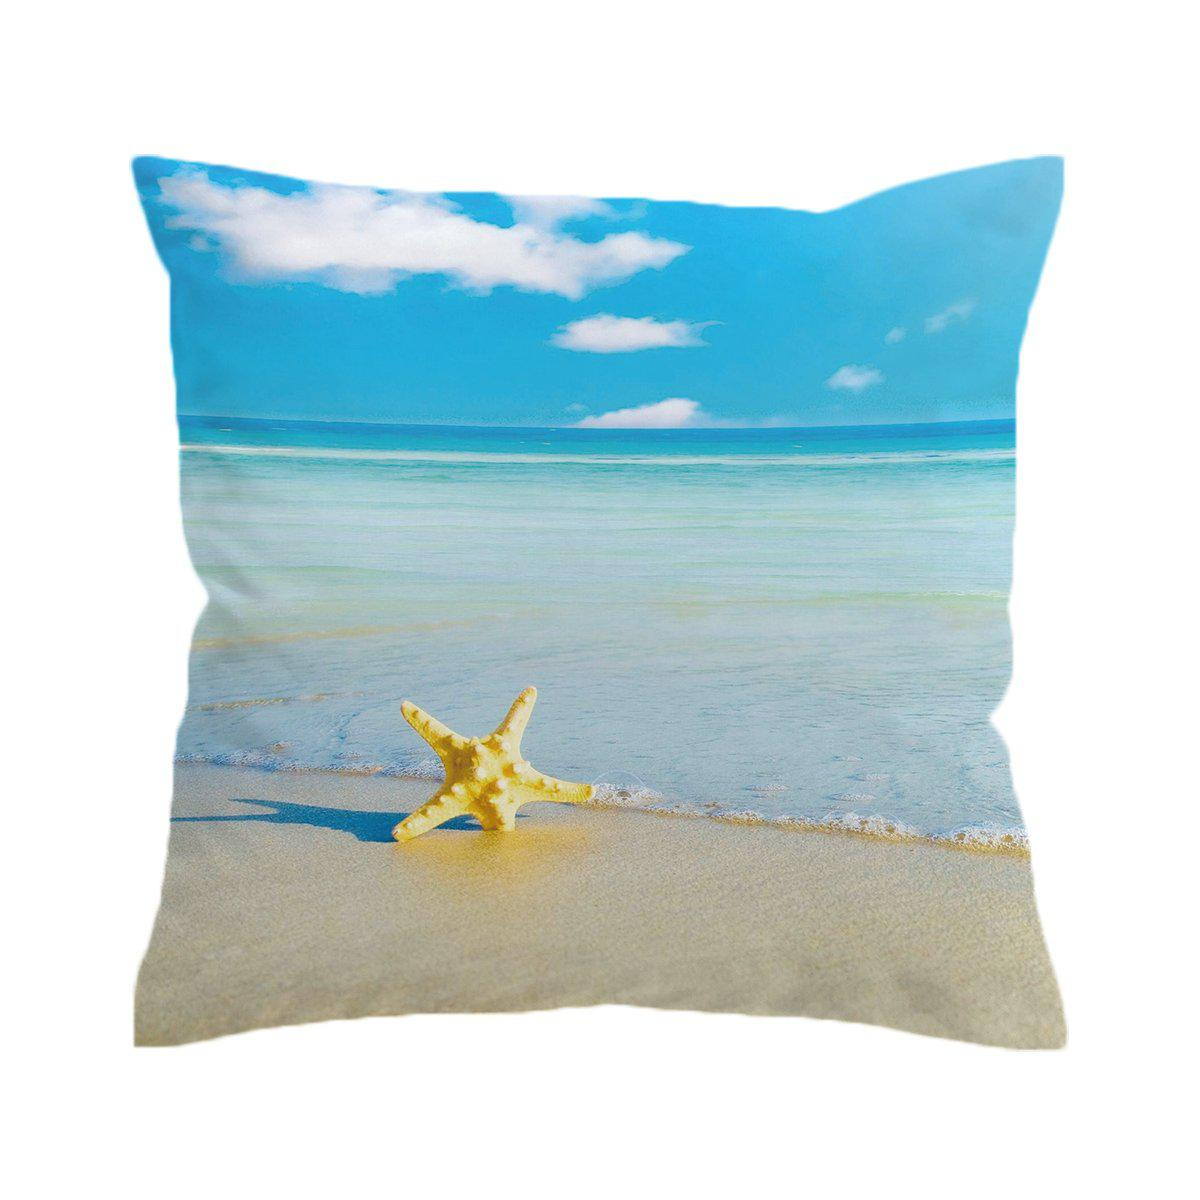 Beach Please Pillow Cover-Coastal Passion